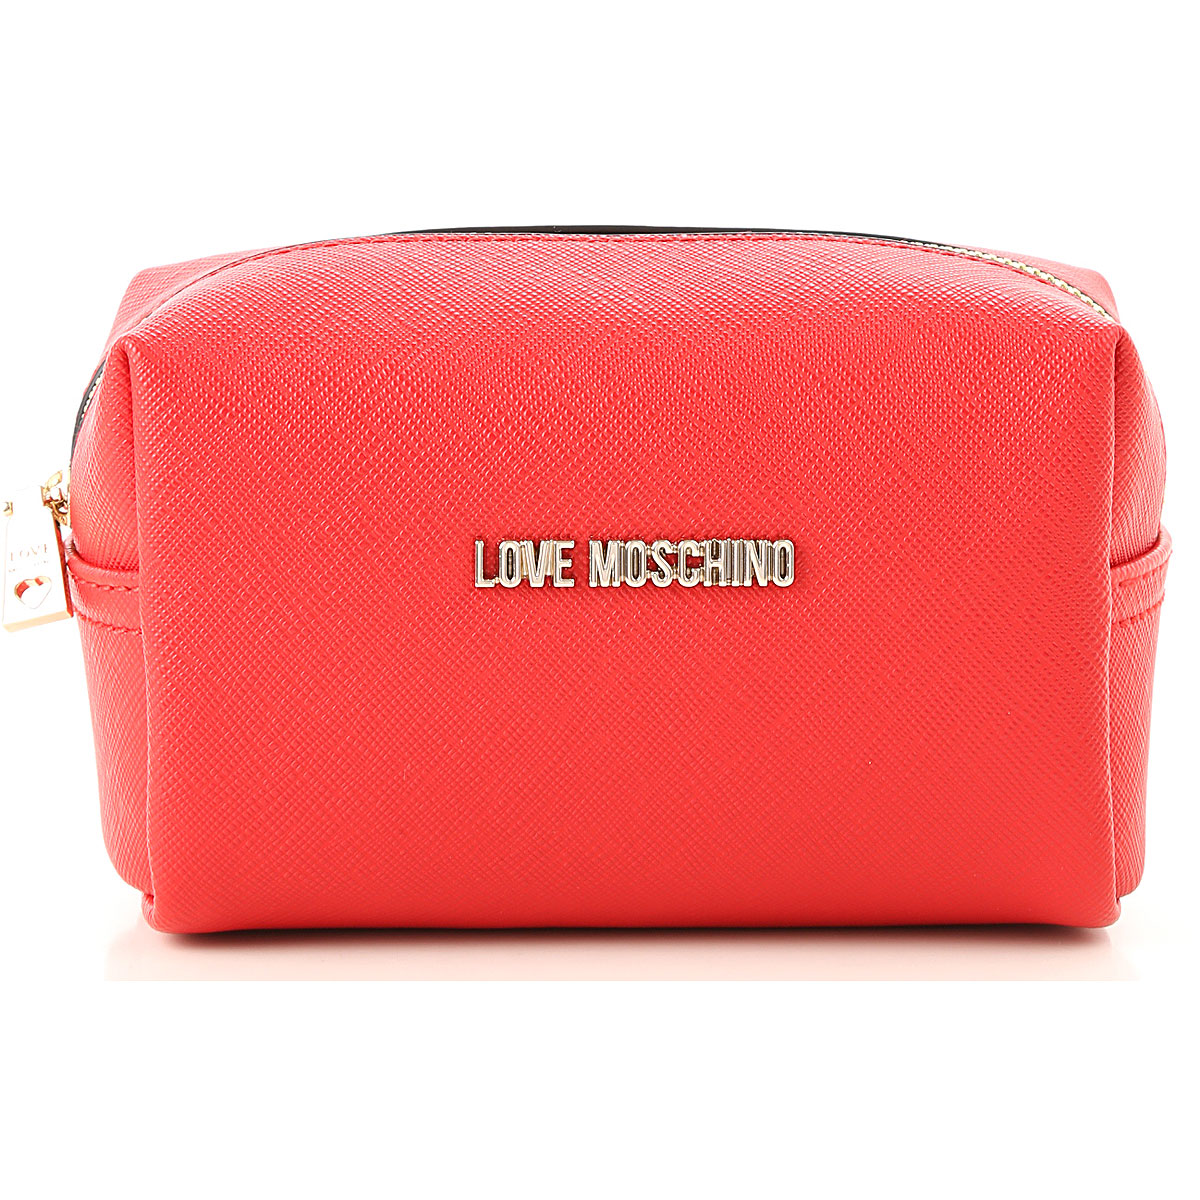 Image of Moschino Toiletry Bags, Red, polyurethane, 2017